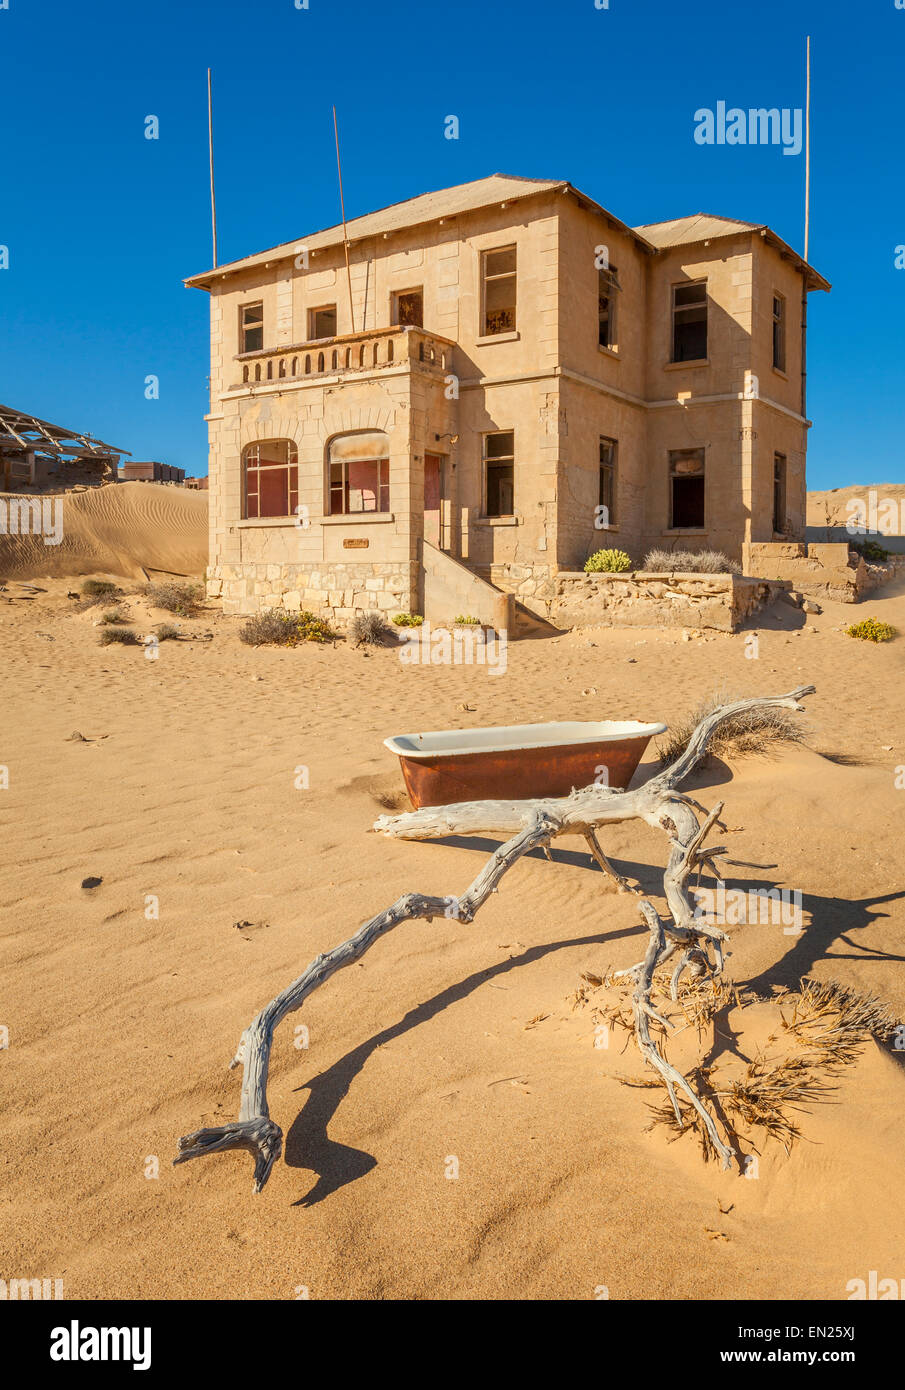 A deserted house in Kolmanskop, a former diamond town in Namibia. Stock Photo